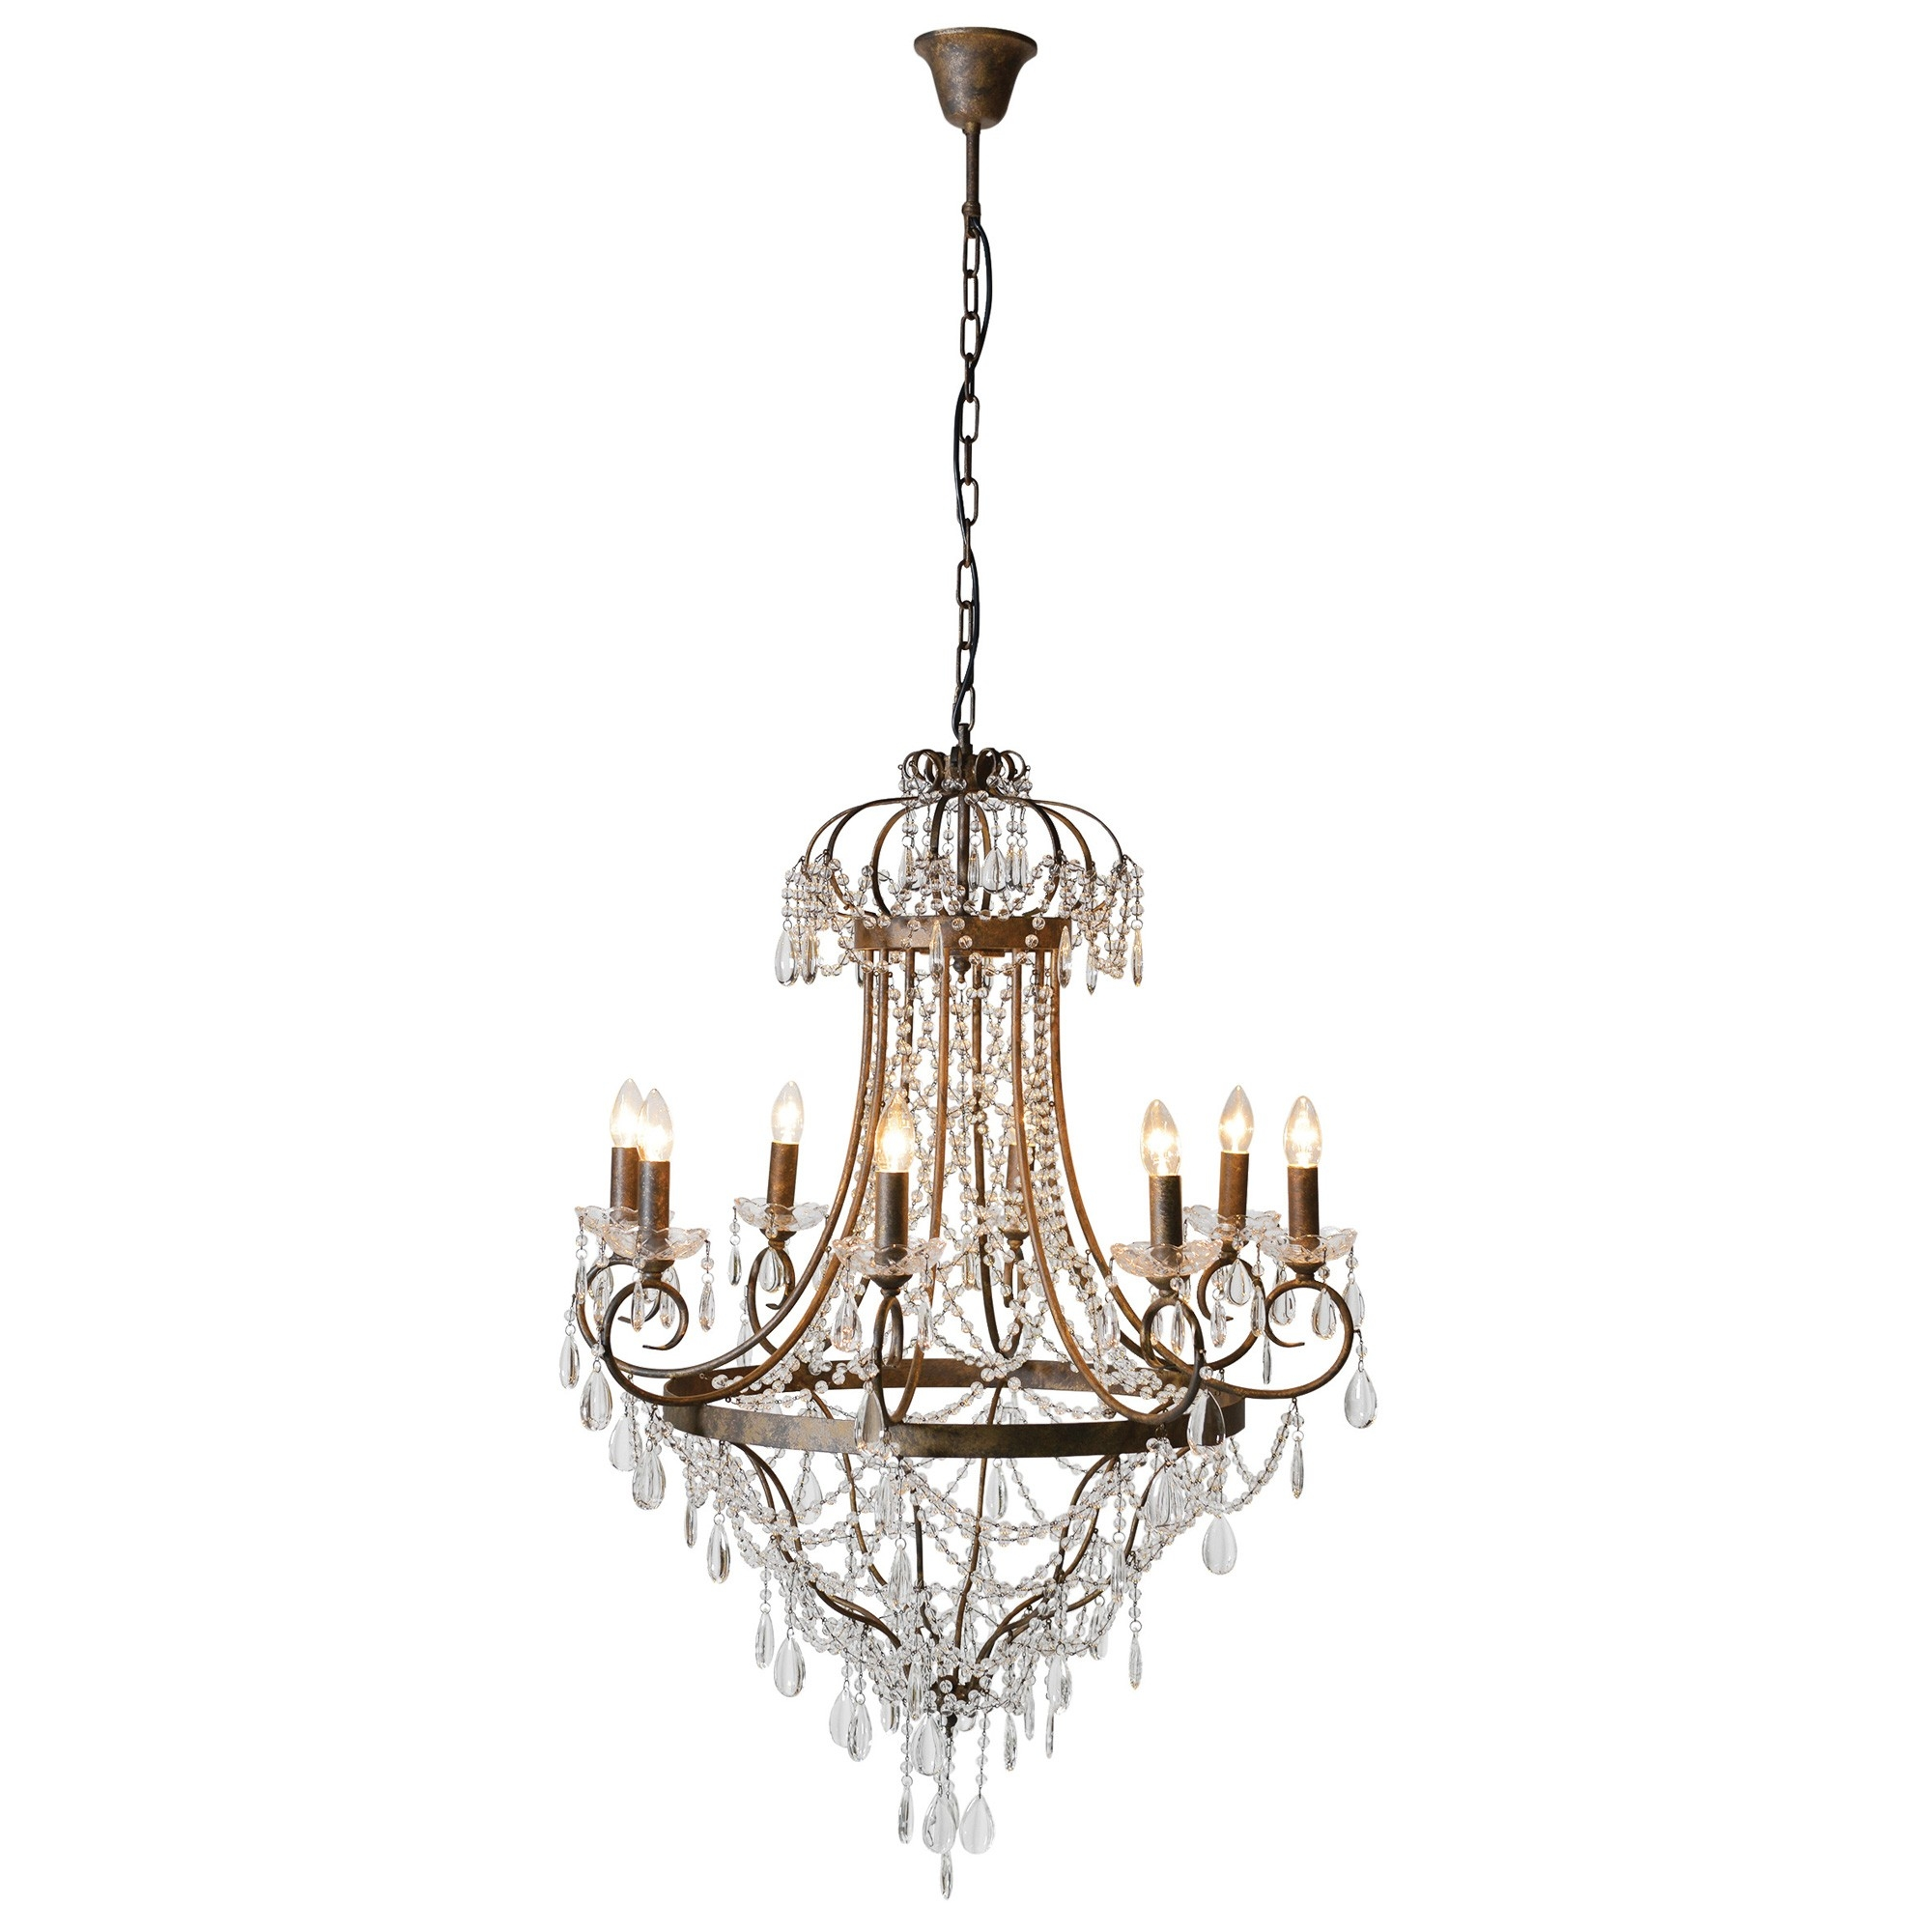 Elegant Glass Droplet Chandelier Chandeliers Lighting Shop Intended For Glass Droplet Chandelier (Image 7 of 15)